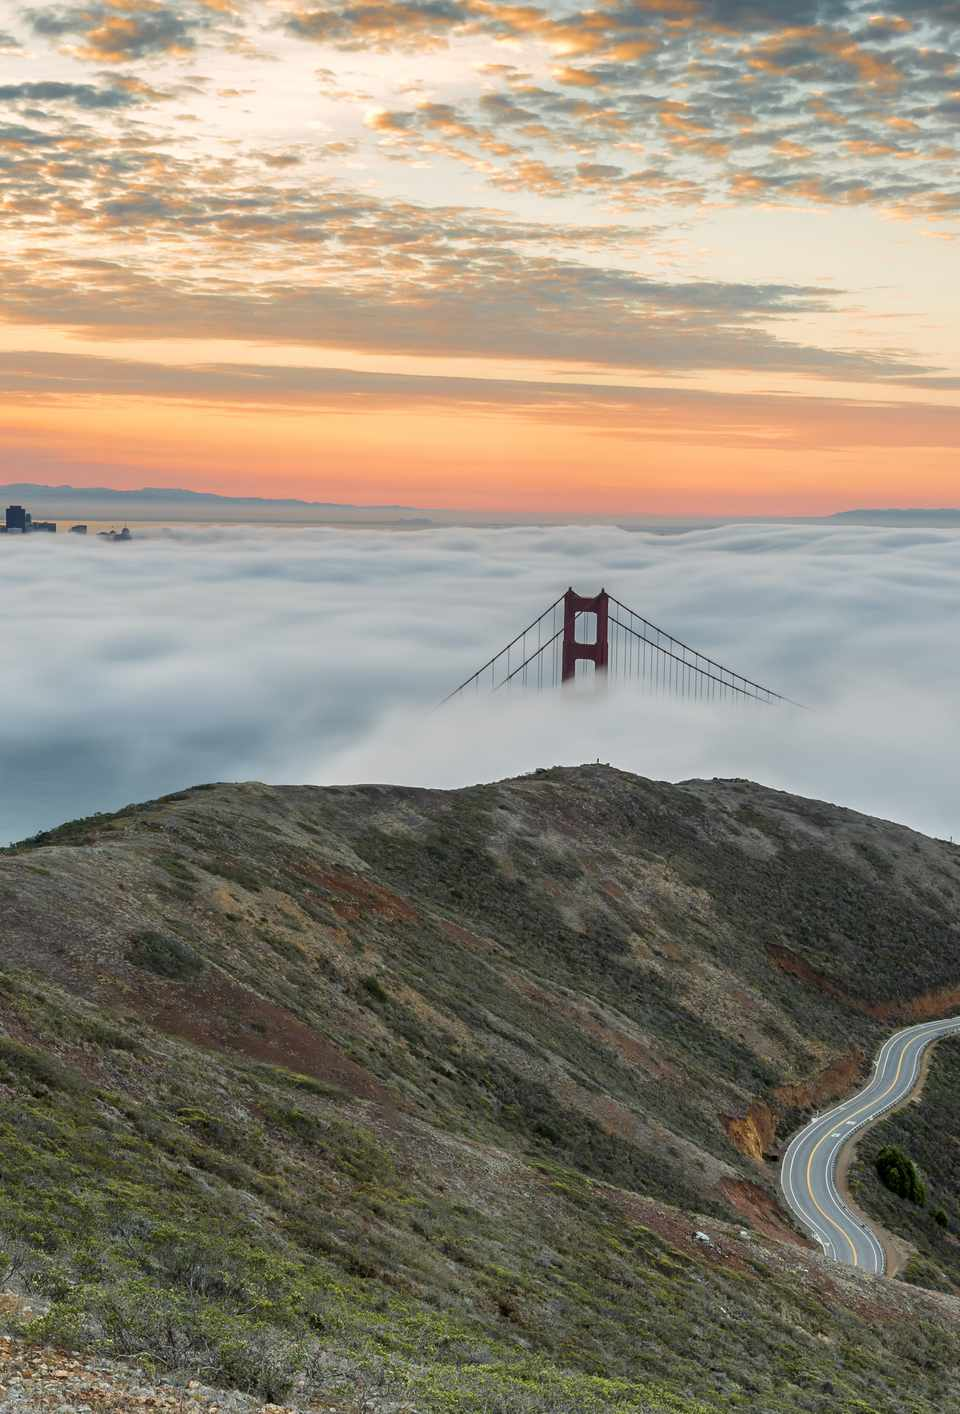 The towers of the Golden Gate Bridge, just visible over a bank of fog